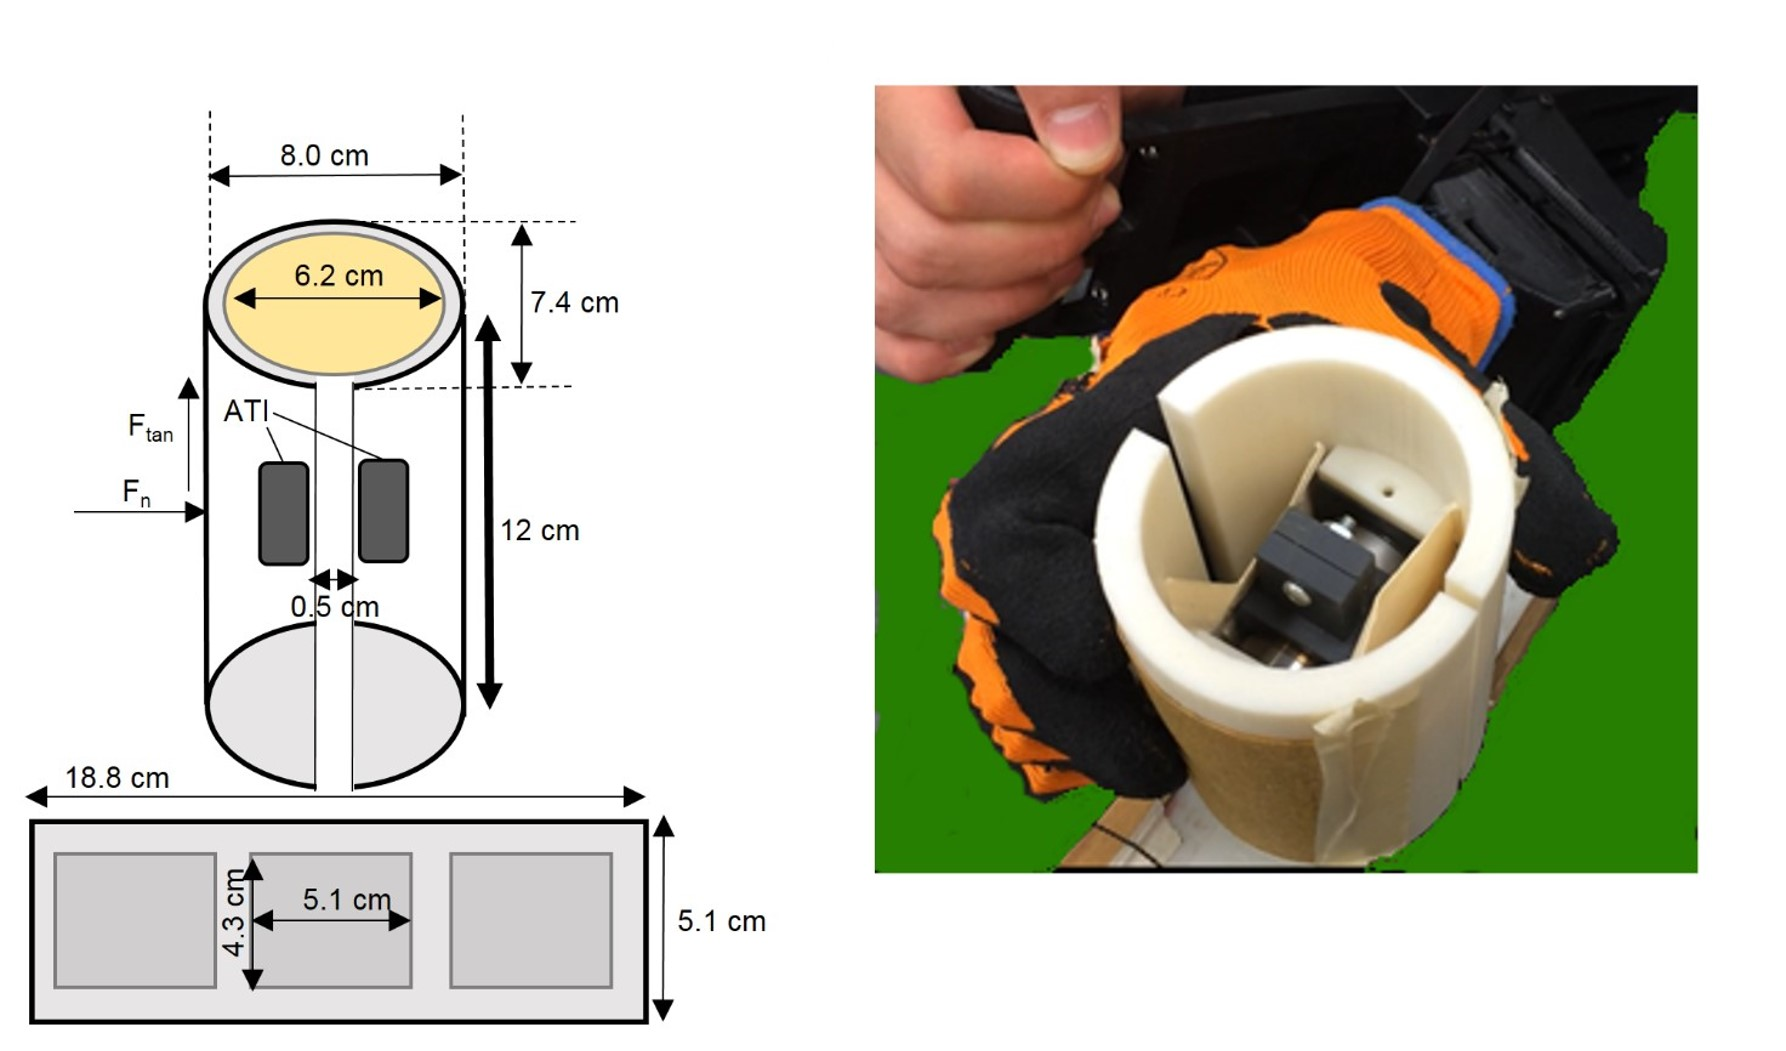 Figure 3.  Sensorized grip device used to measure grip and load forces exerted by a soft-synergy myoelectric prosthetic hand (SoftHand Pro). From: Gailey et al. (2017).